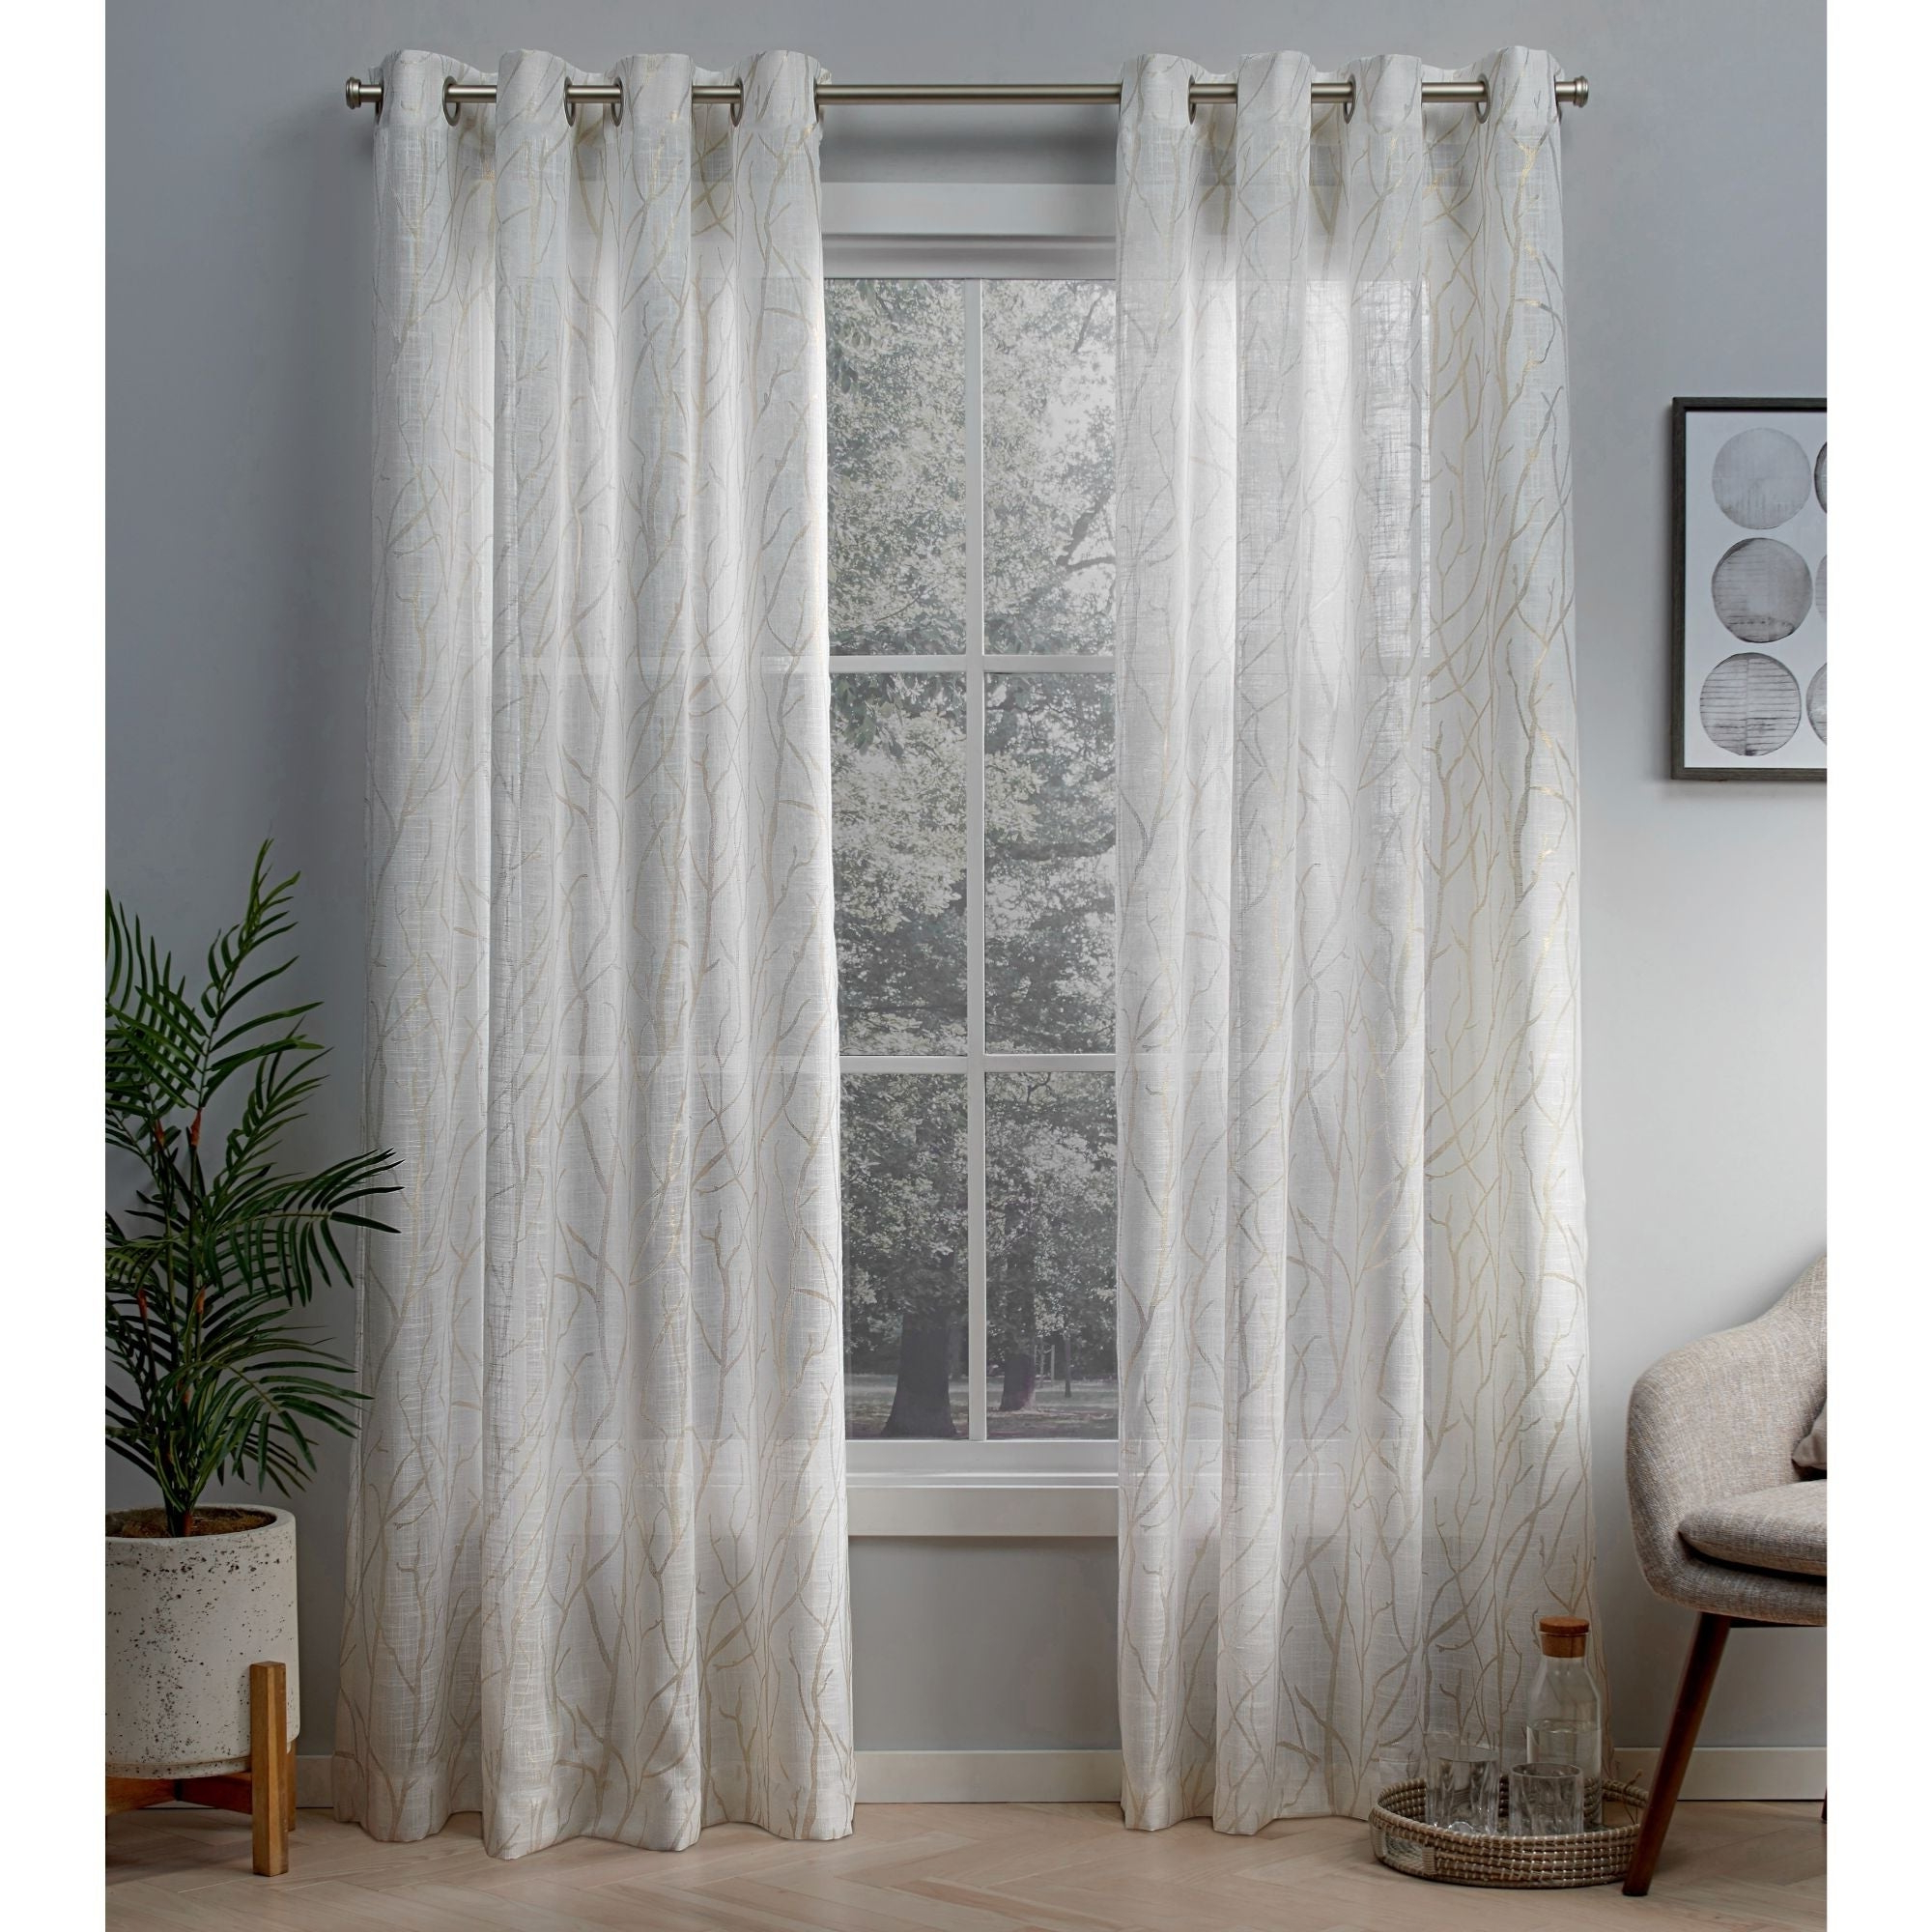 Penny Sheer Grommet Top Curtain Panel Pairs Within Most Popular Ati Home Woodland Metallic Print Sheer Grommet Top Curtain Panel Pair (View 3 of 20)